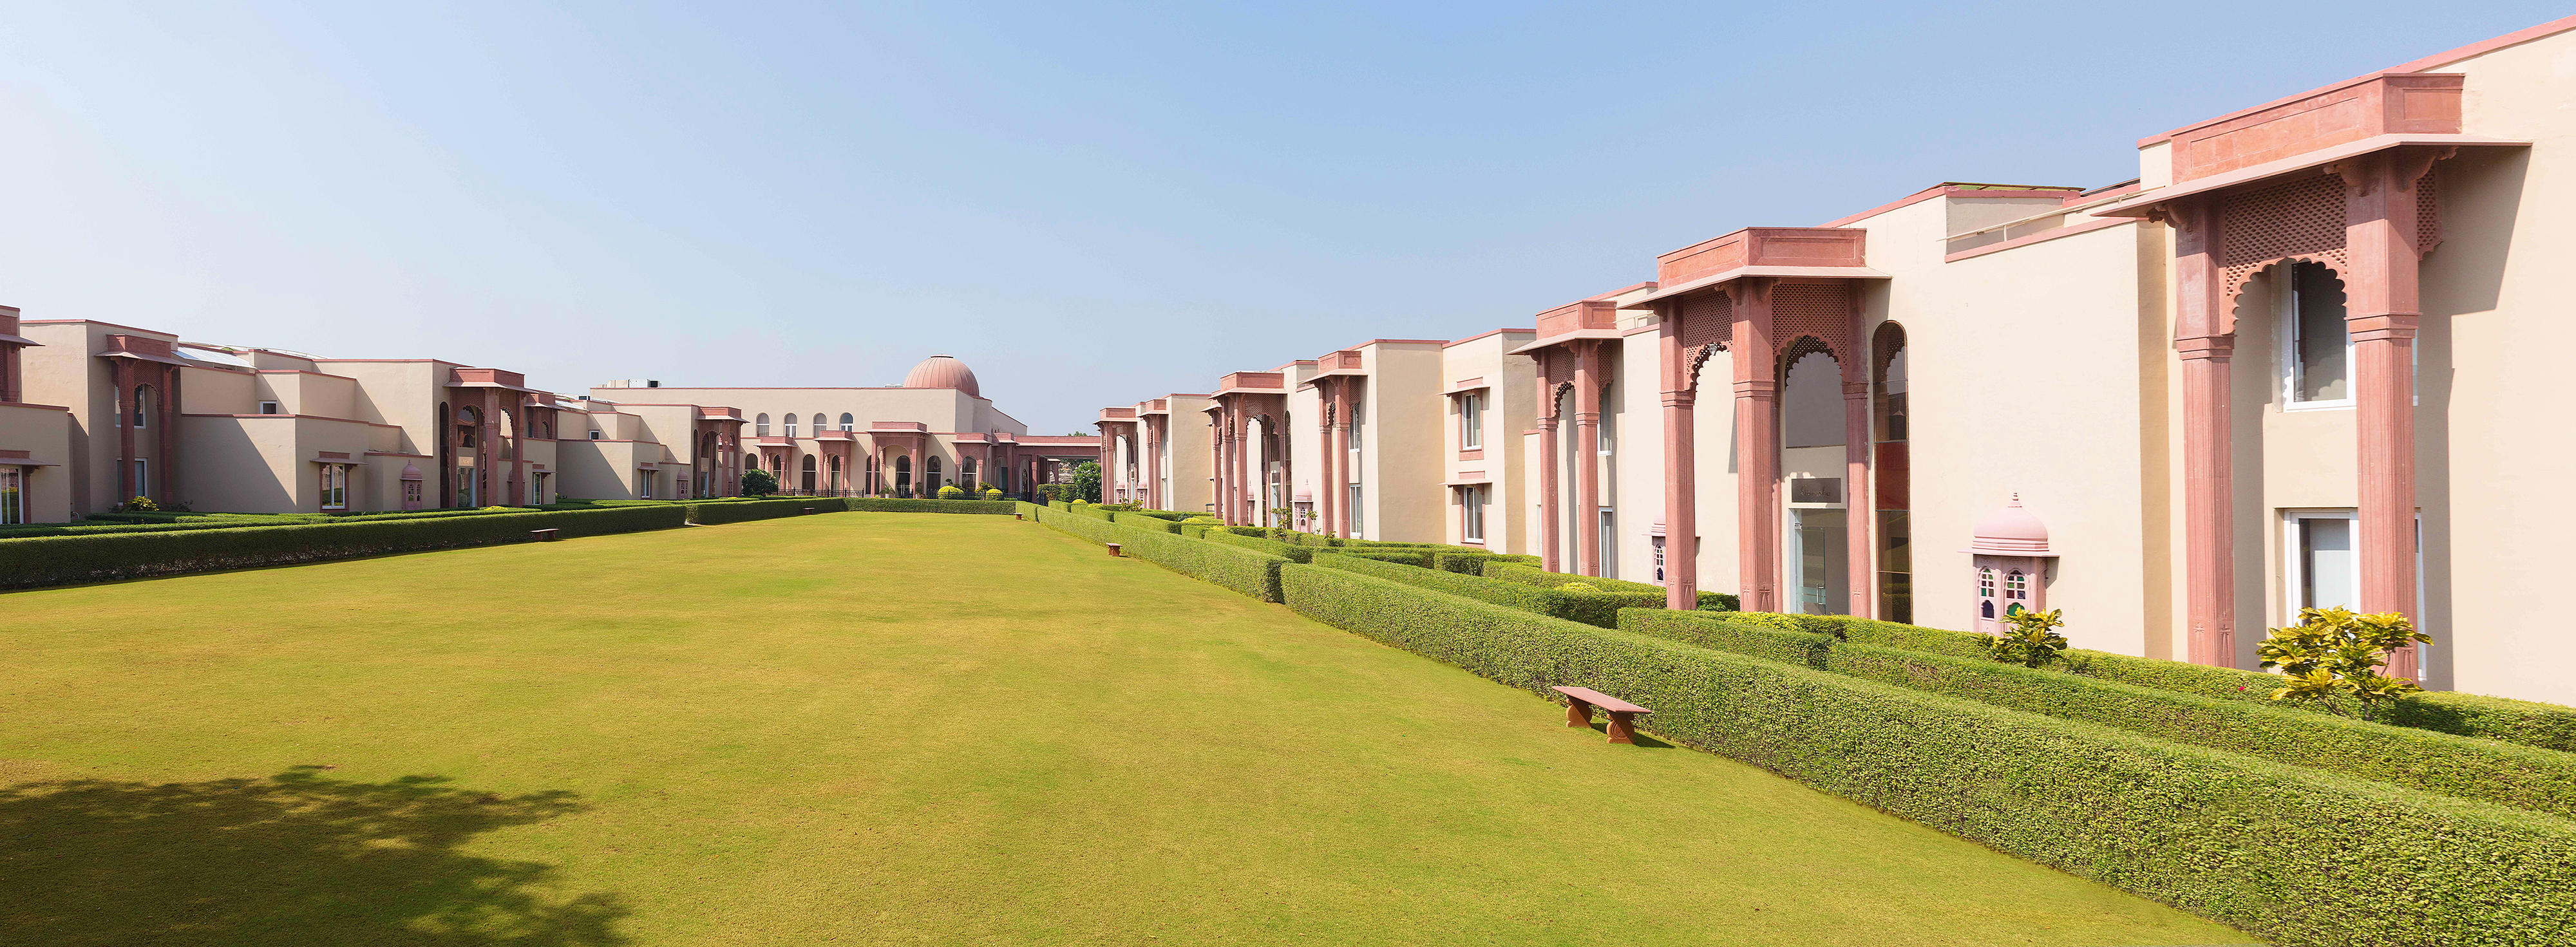 RUDRA BAGH (10,000 SQ FT)